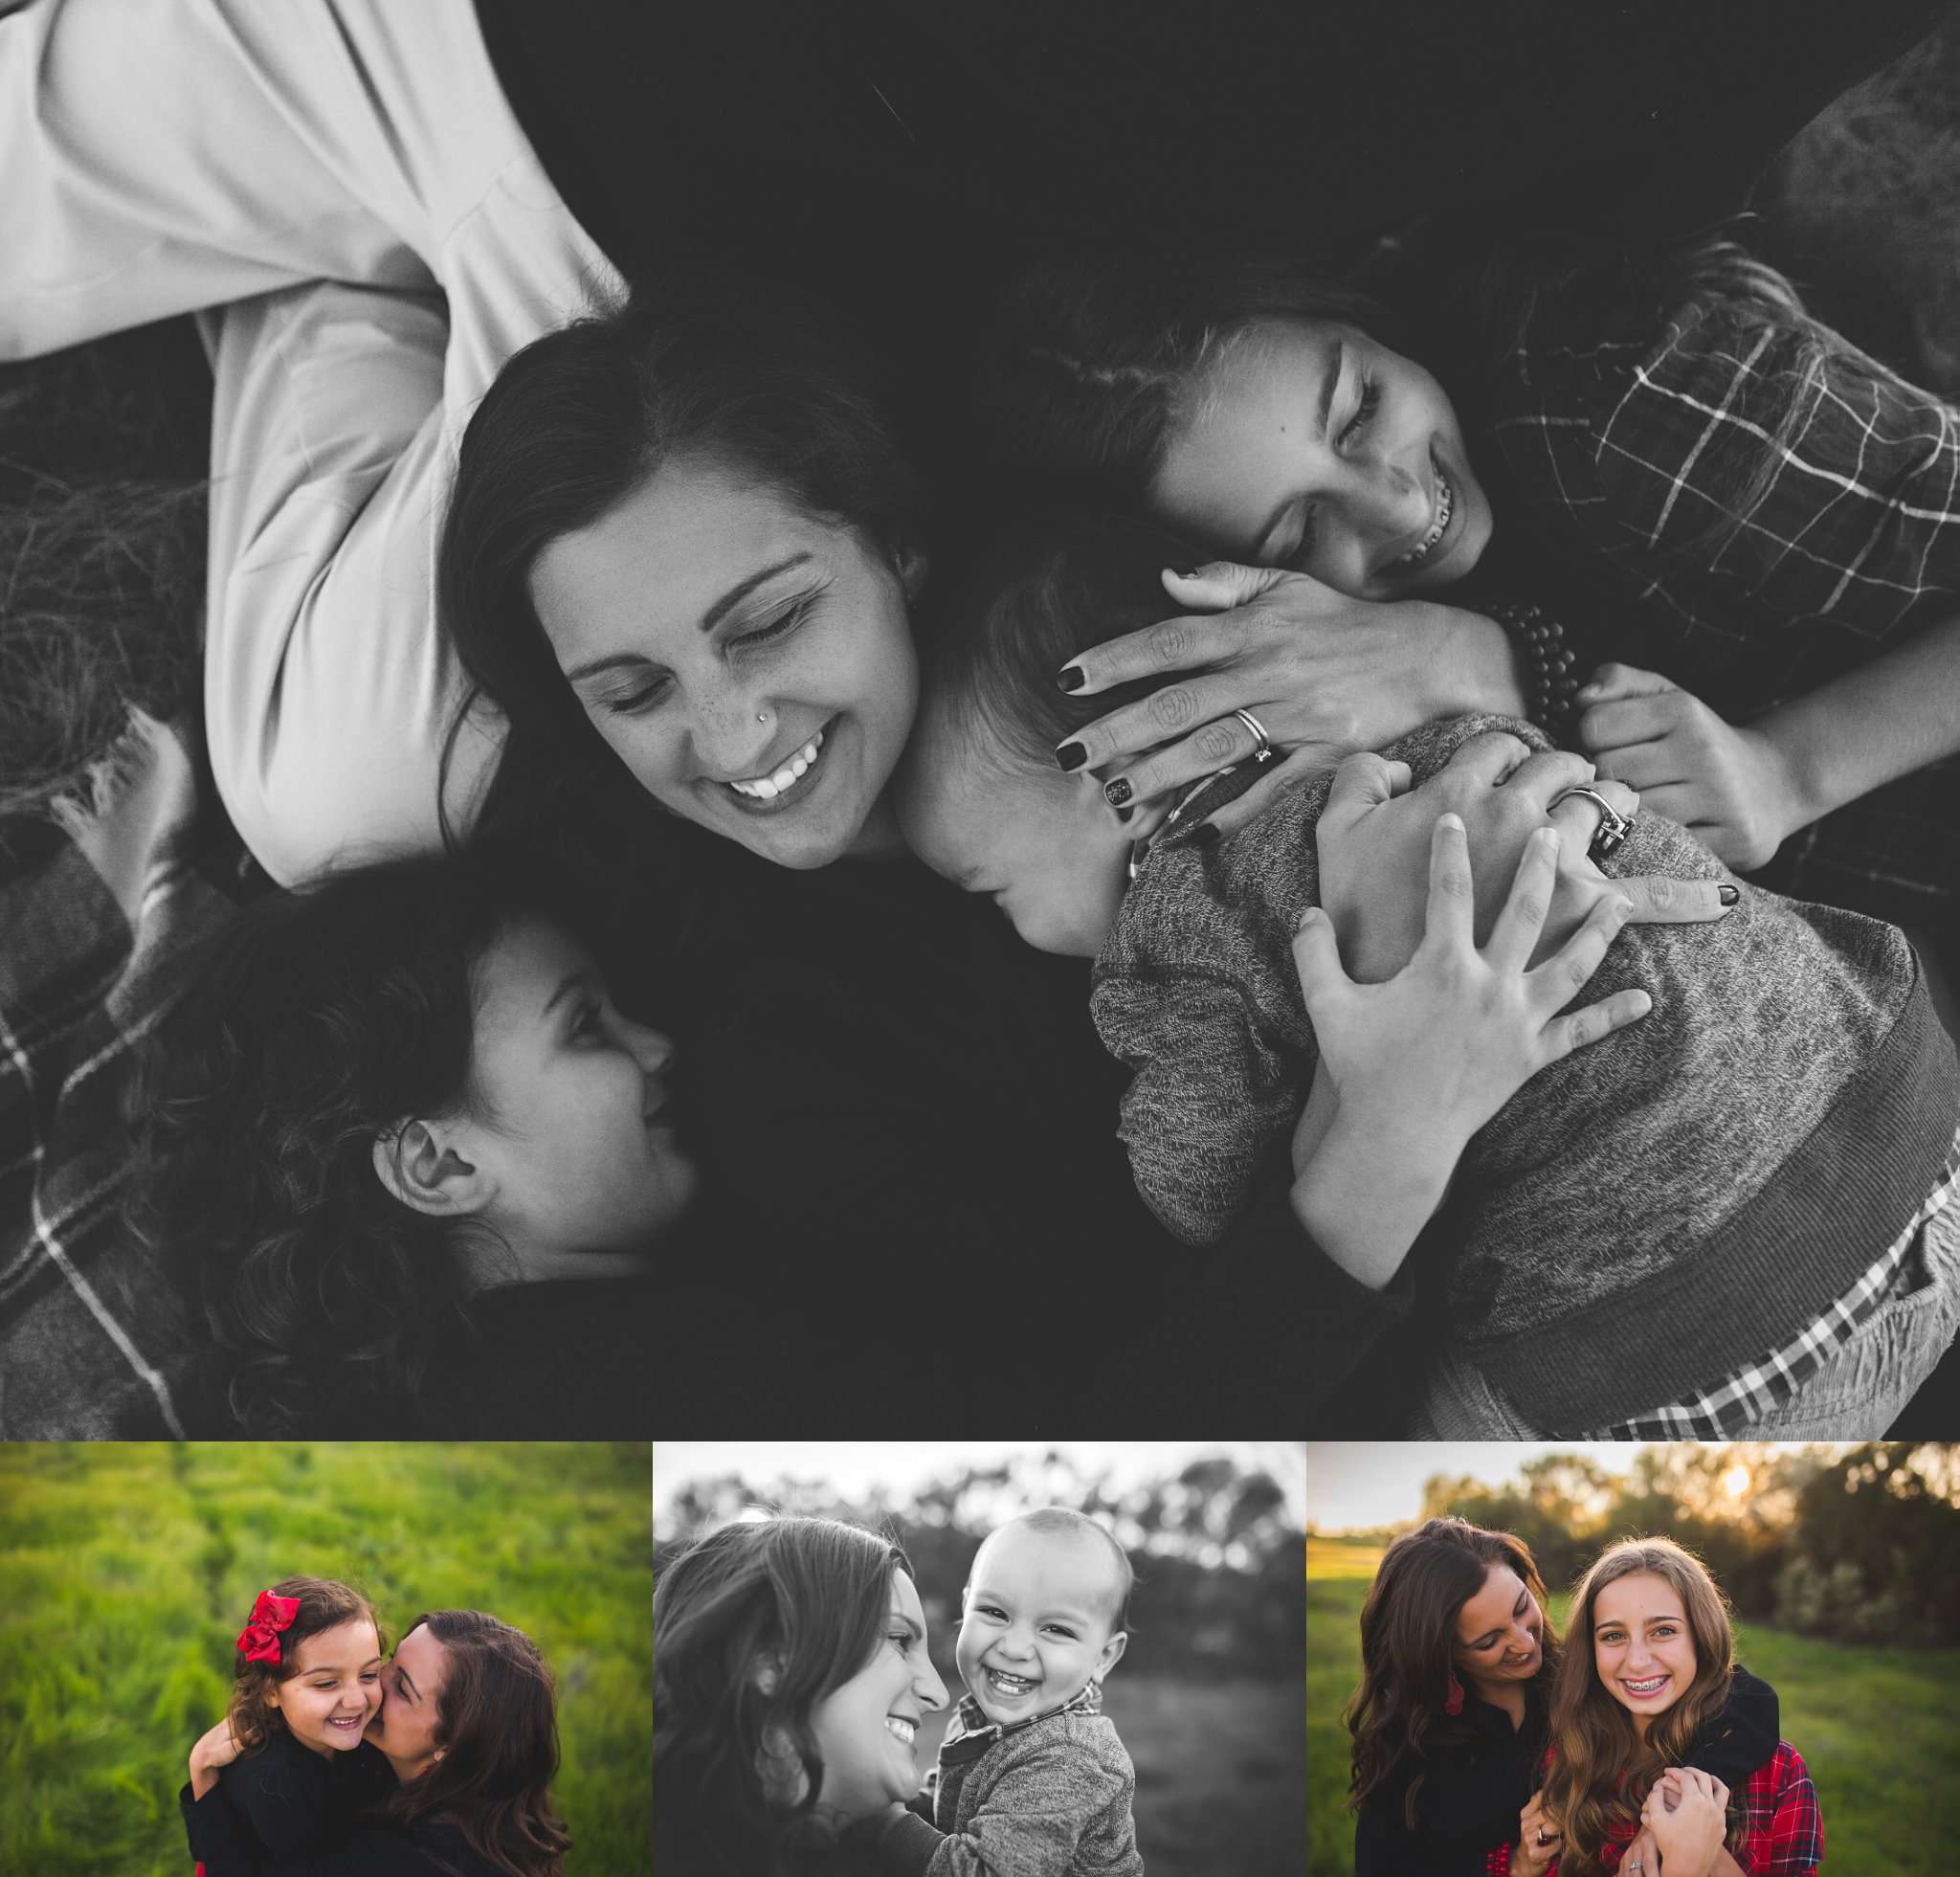 Becci Ravera Photography Roseville Sacramento and Northern CA Photographer Family and Newborn Lifestyle Photographer